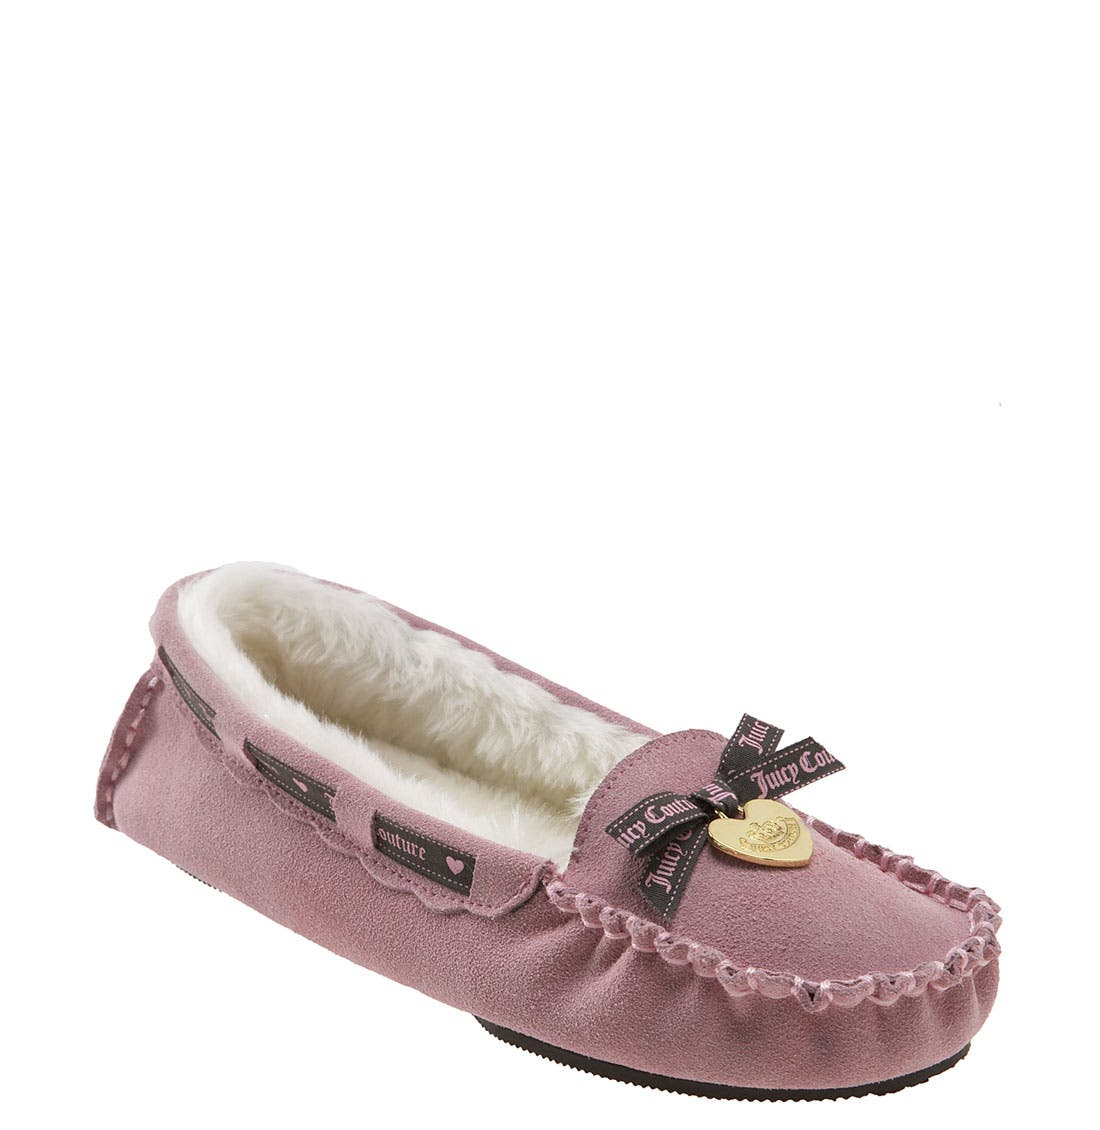 Main Image - Juicy Couture 'Sleepy' Moccasin Slipper